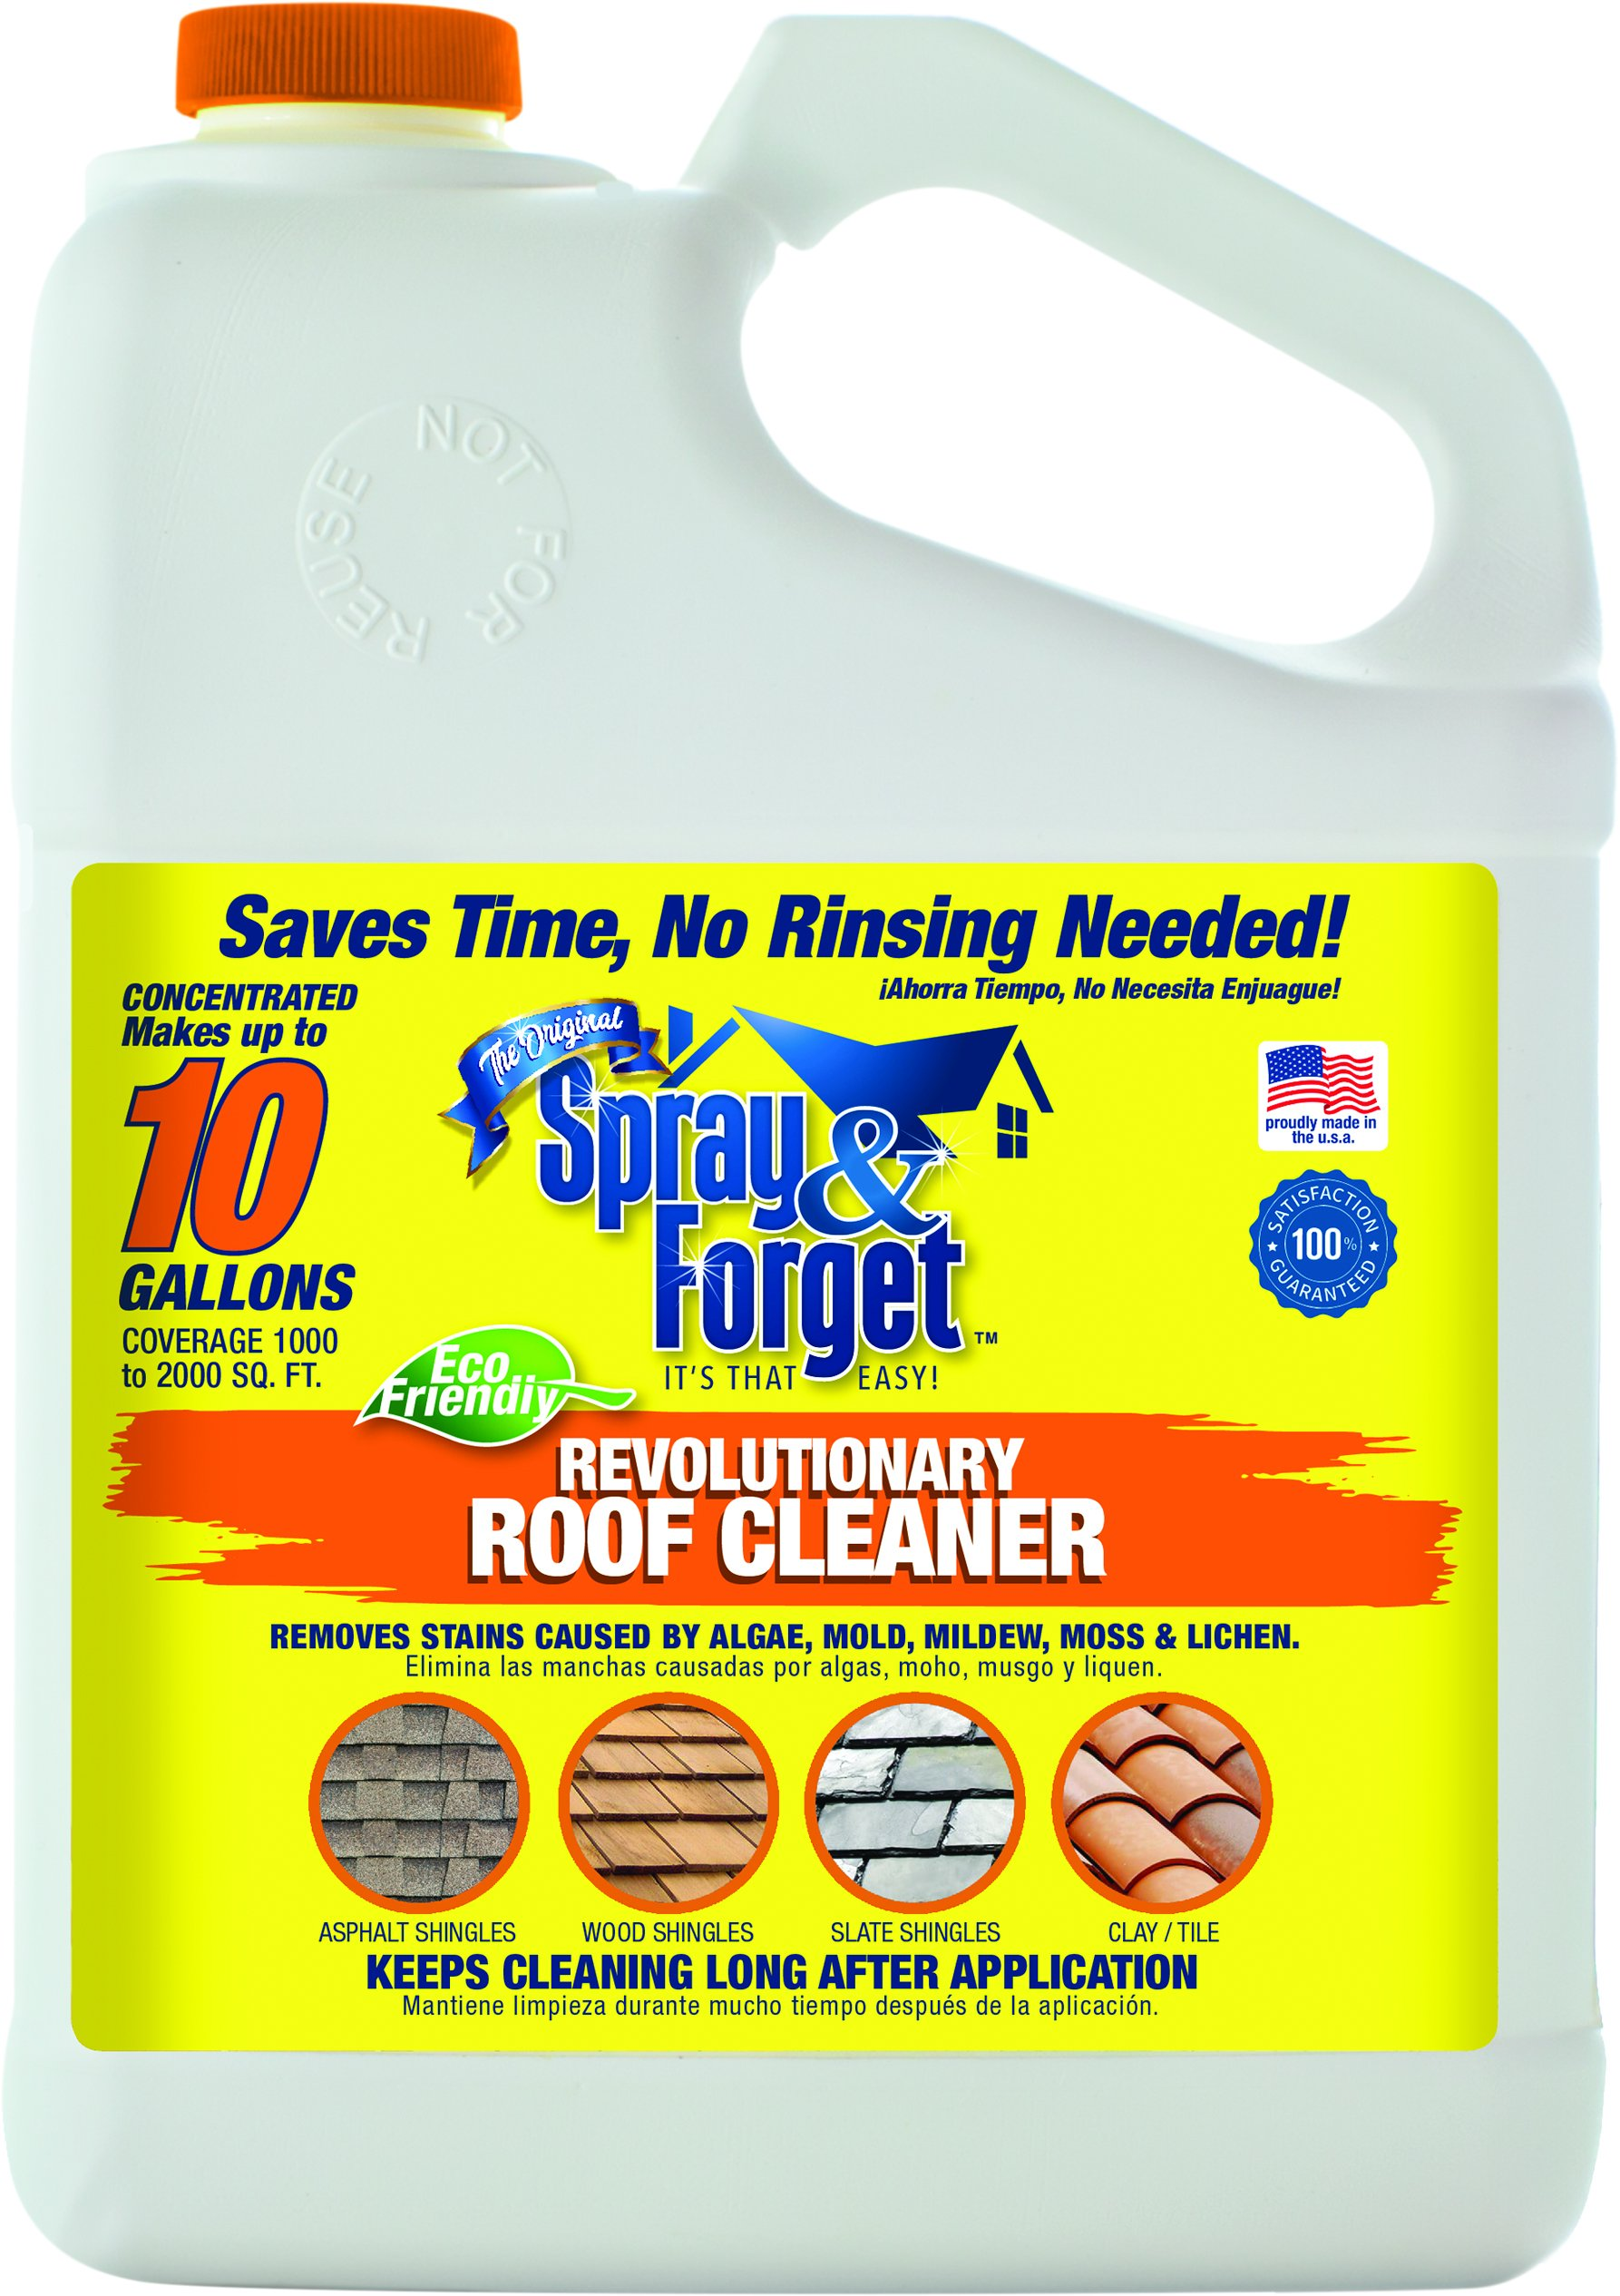 Spray & Forget Revolutionary Roof Cleaner Concentrate, 1 Gallon Bottle, 2 Count, Outdoor Cleaner, Mold Remover, Mildew Remover